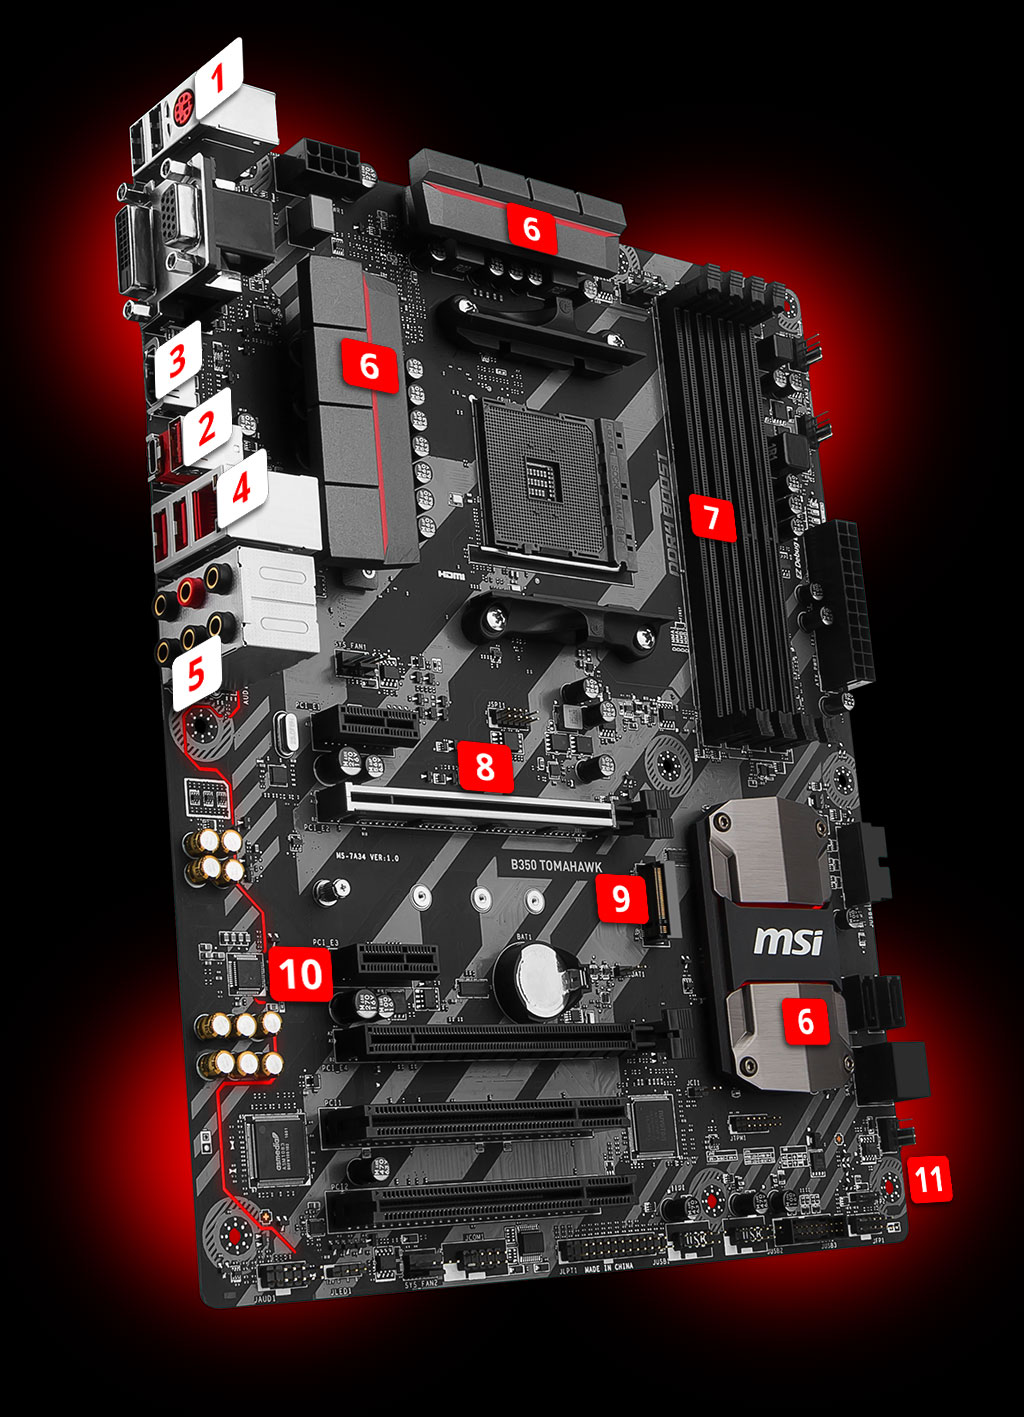 MSI B350 Tomahawk B350 AM4 ATX Motherboard | PC Express